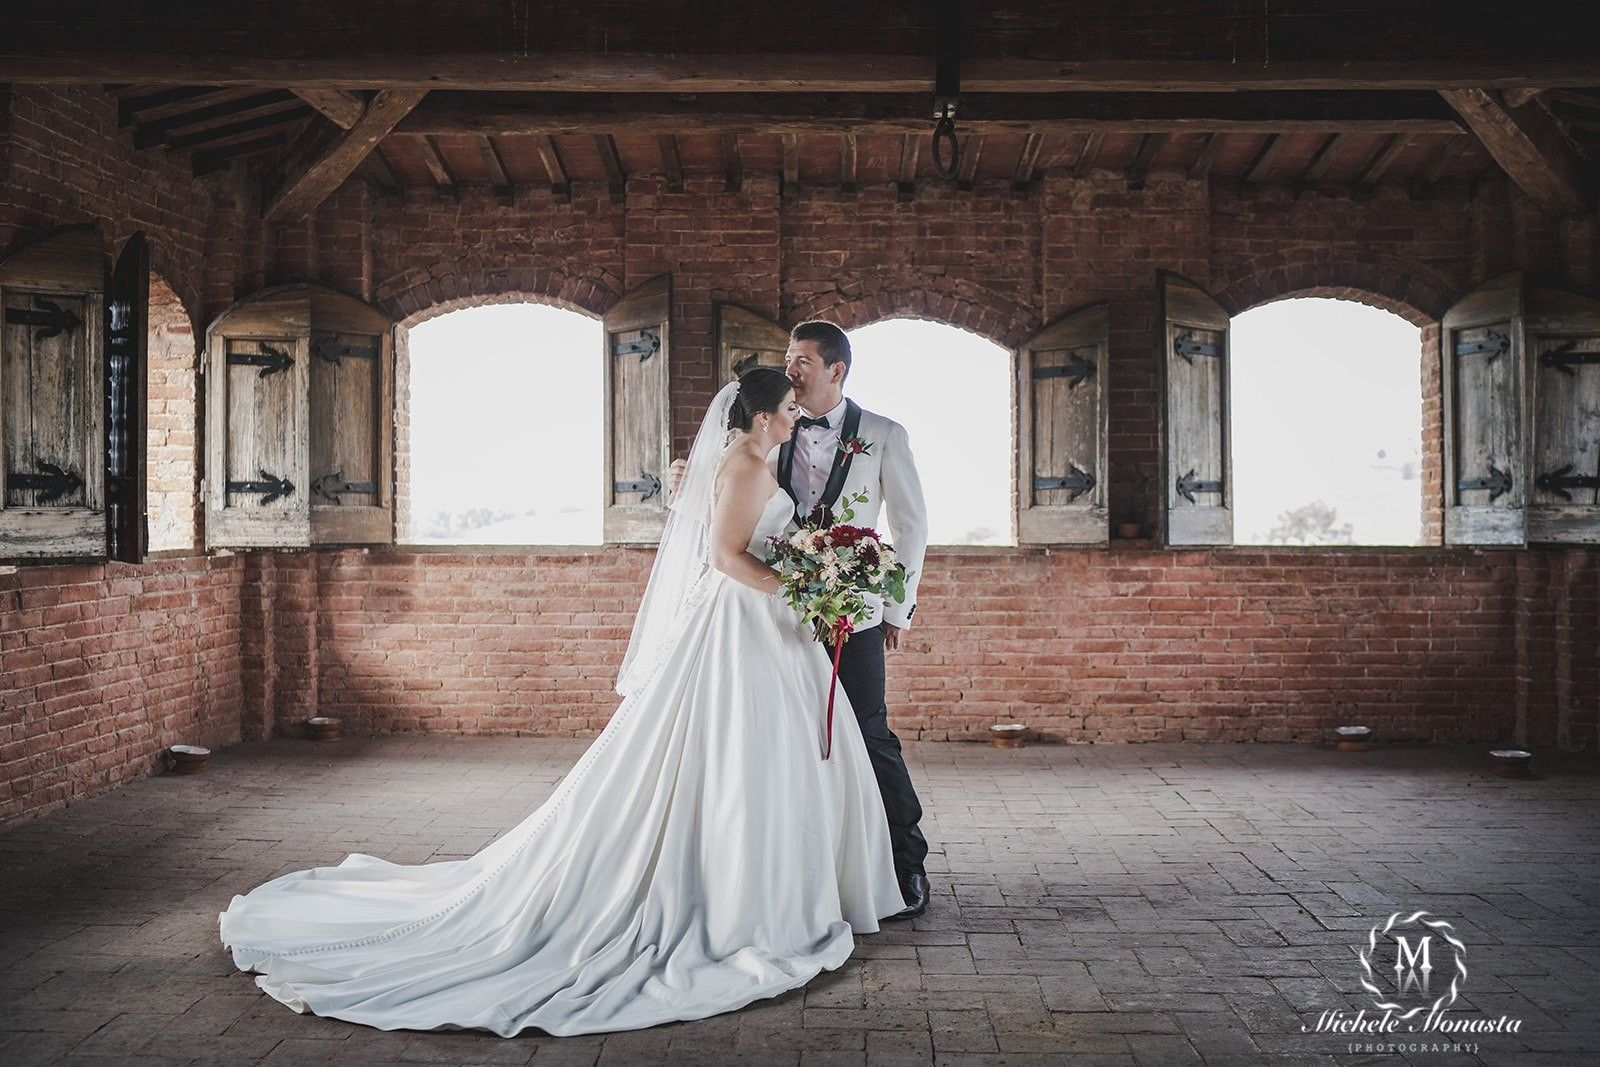 Lauren & Josh - Get married in a castle in Siena